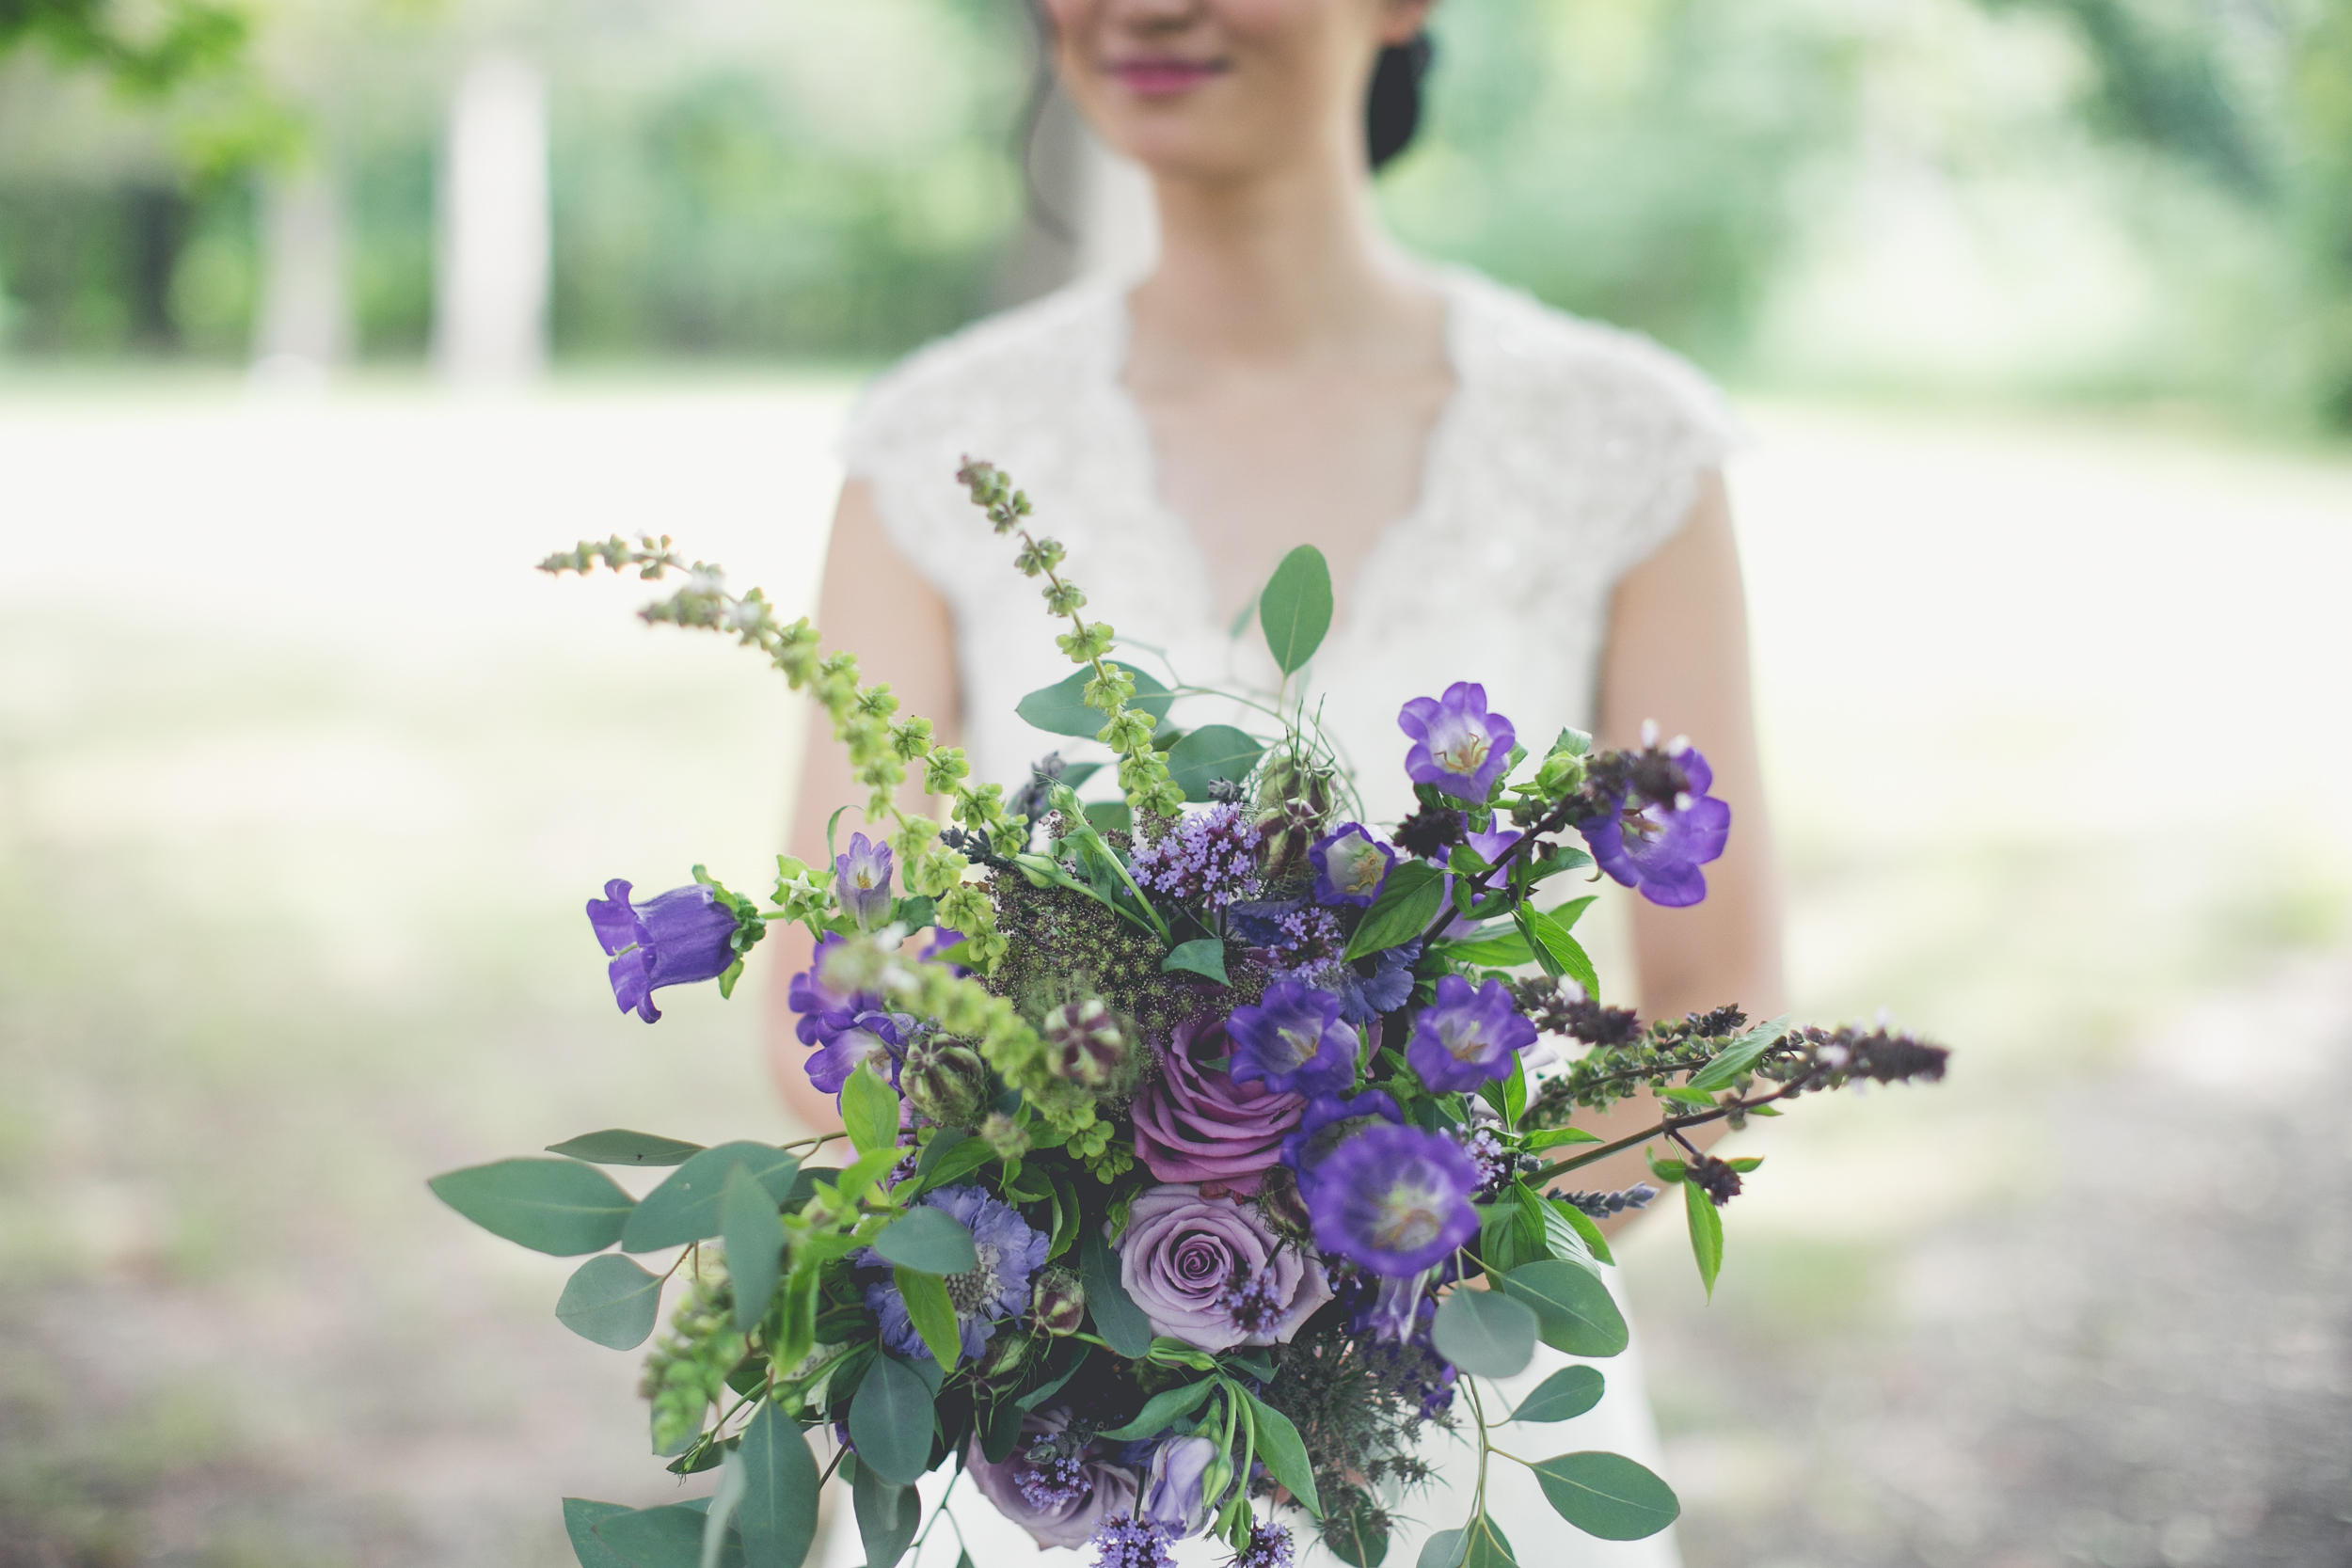 Shades of lavender with roses, campanula, flowering basil, eucalyptus, scabiosa and nigella pods.